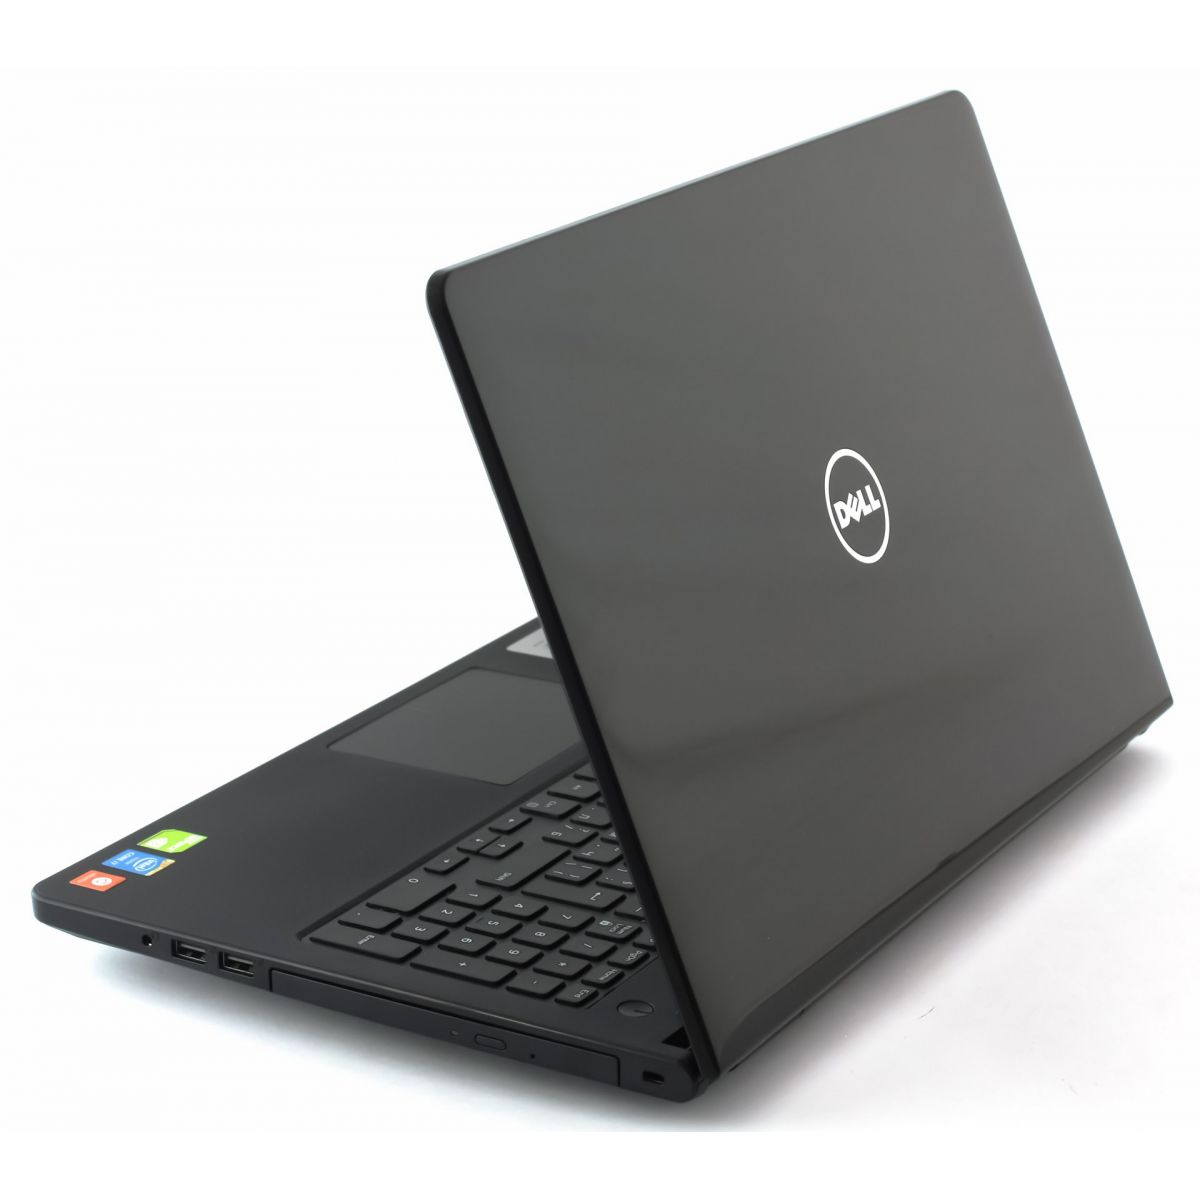 Nb Dell Inspiron 5558 Core I5-5200U 2.7/1Tb/4Gb/Dvd/Cam/15/W8Sl